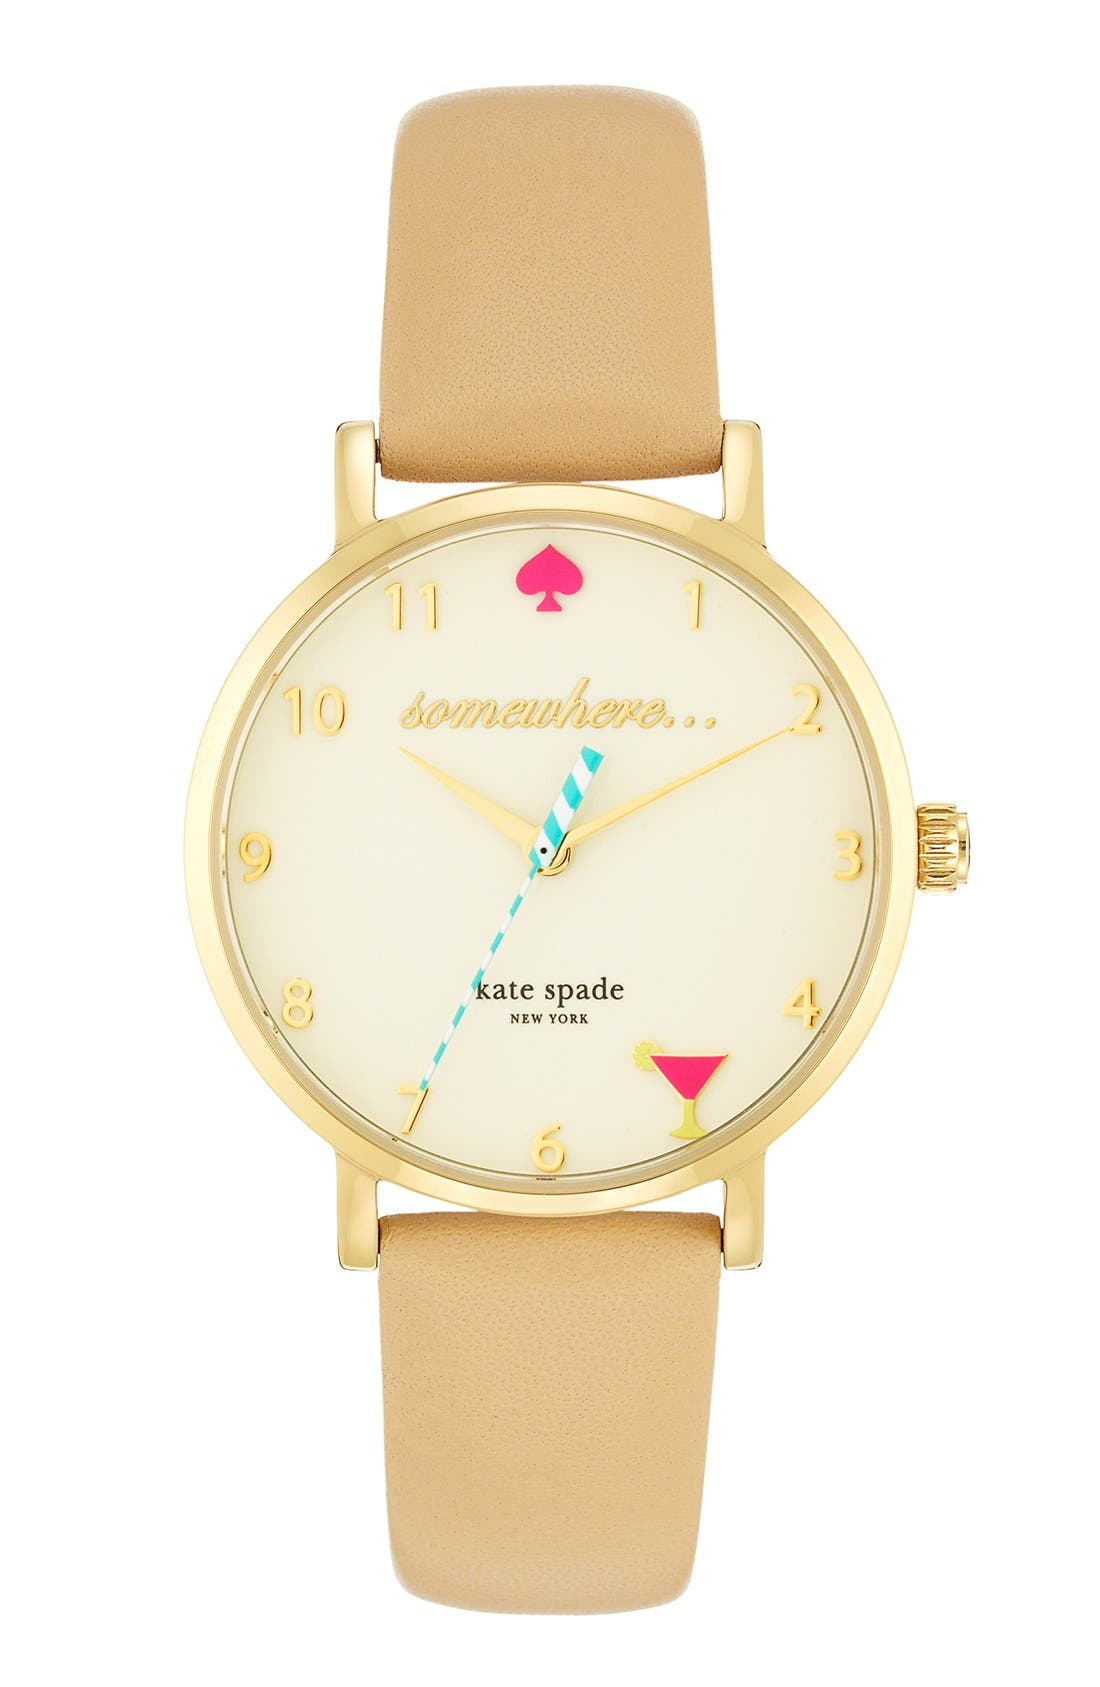 KATE SPADE NEW YORK 'metro - somewhere' leather